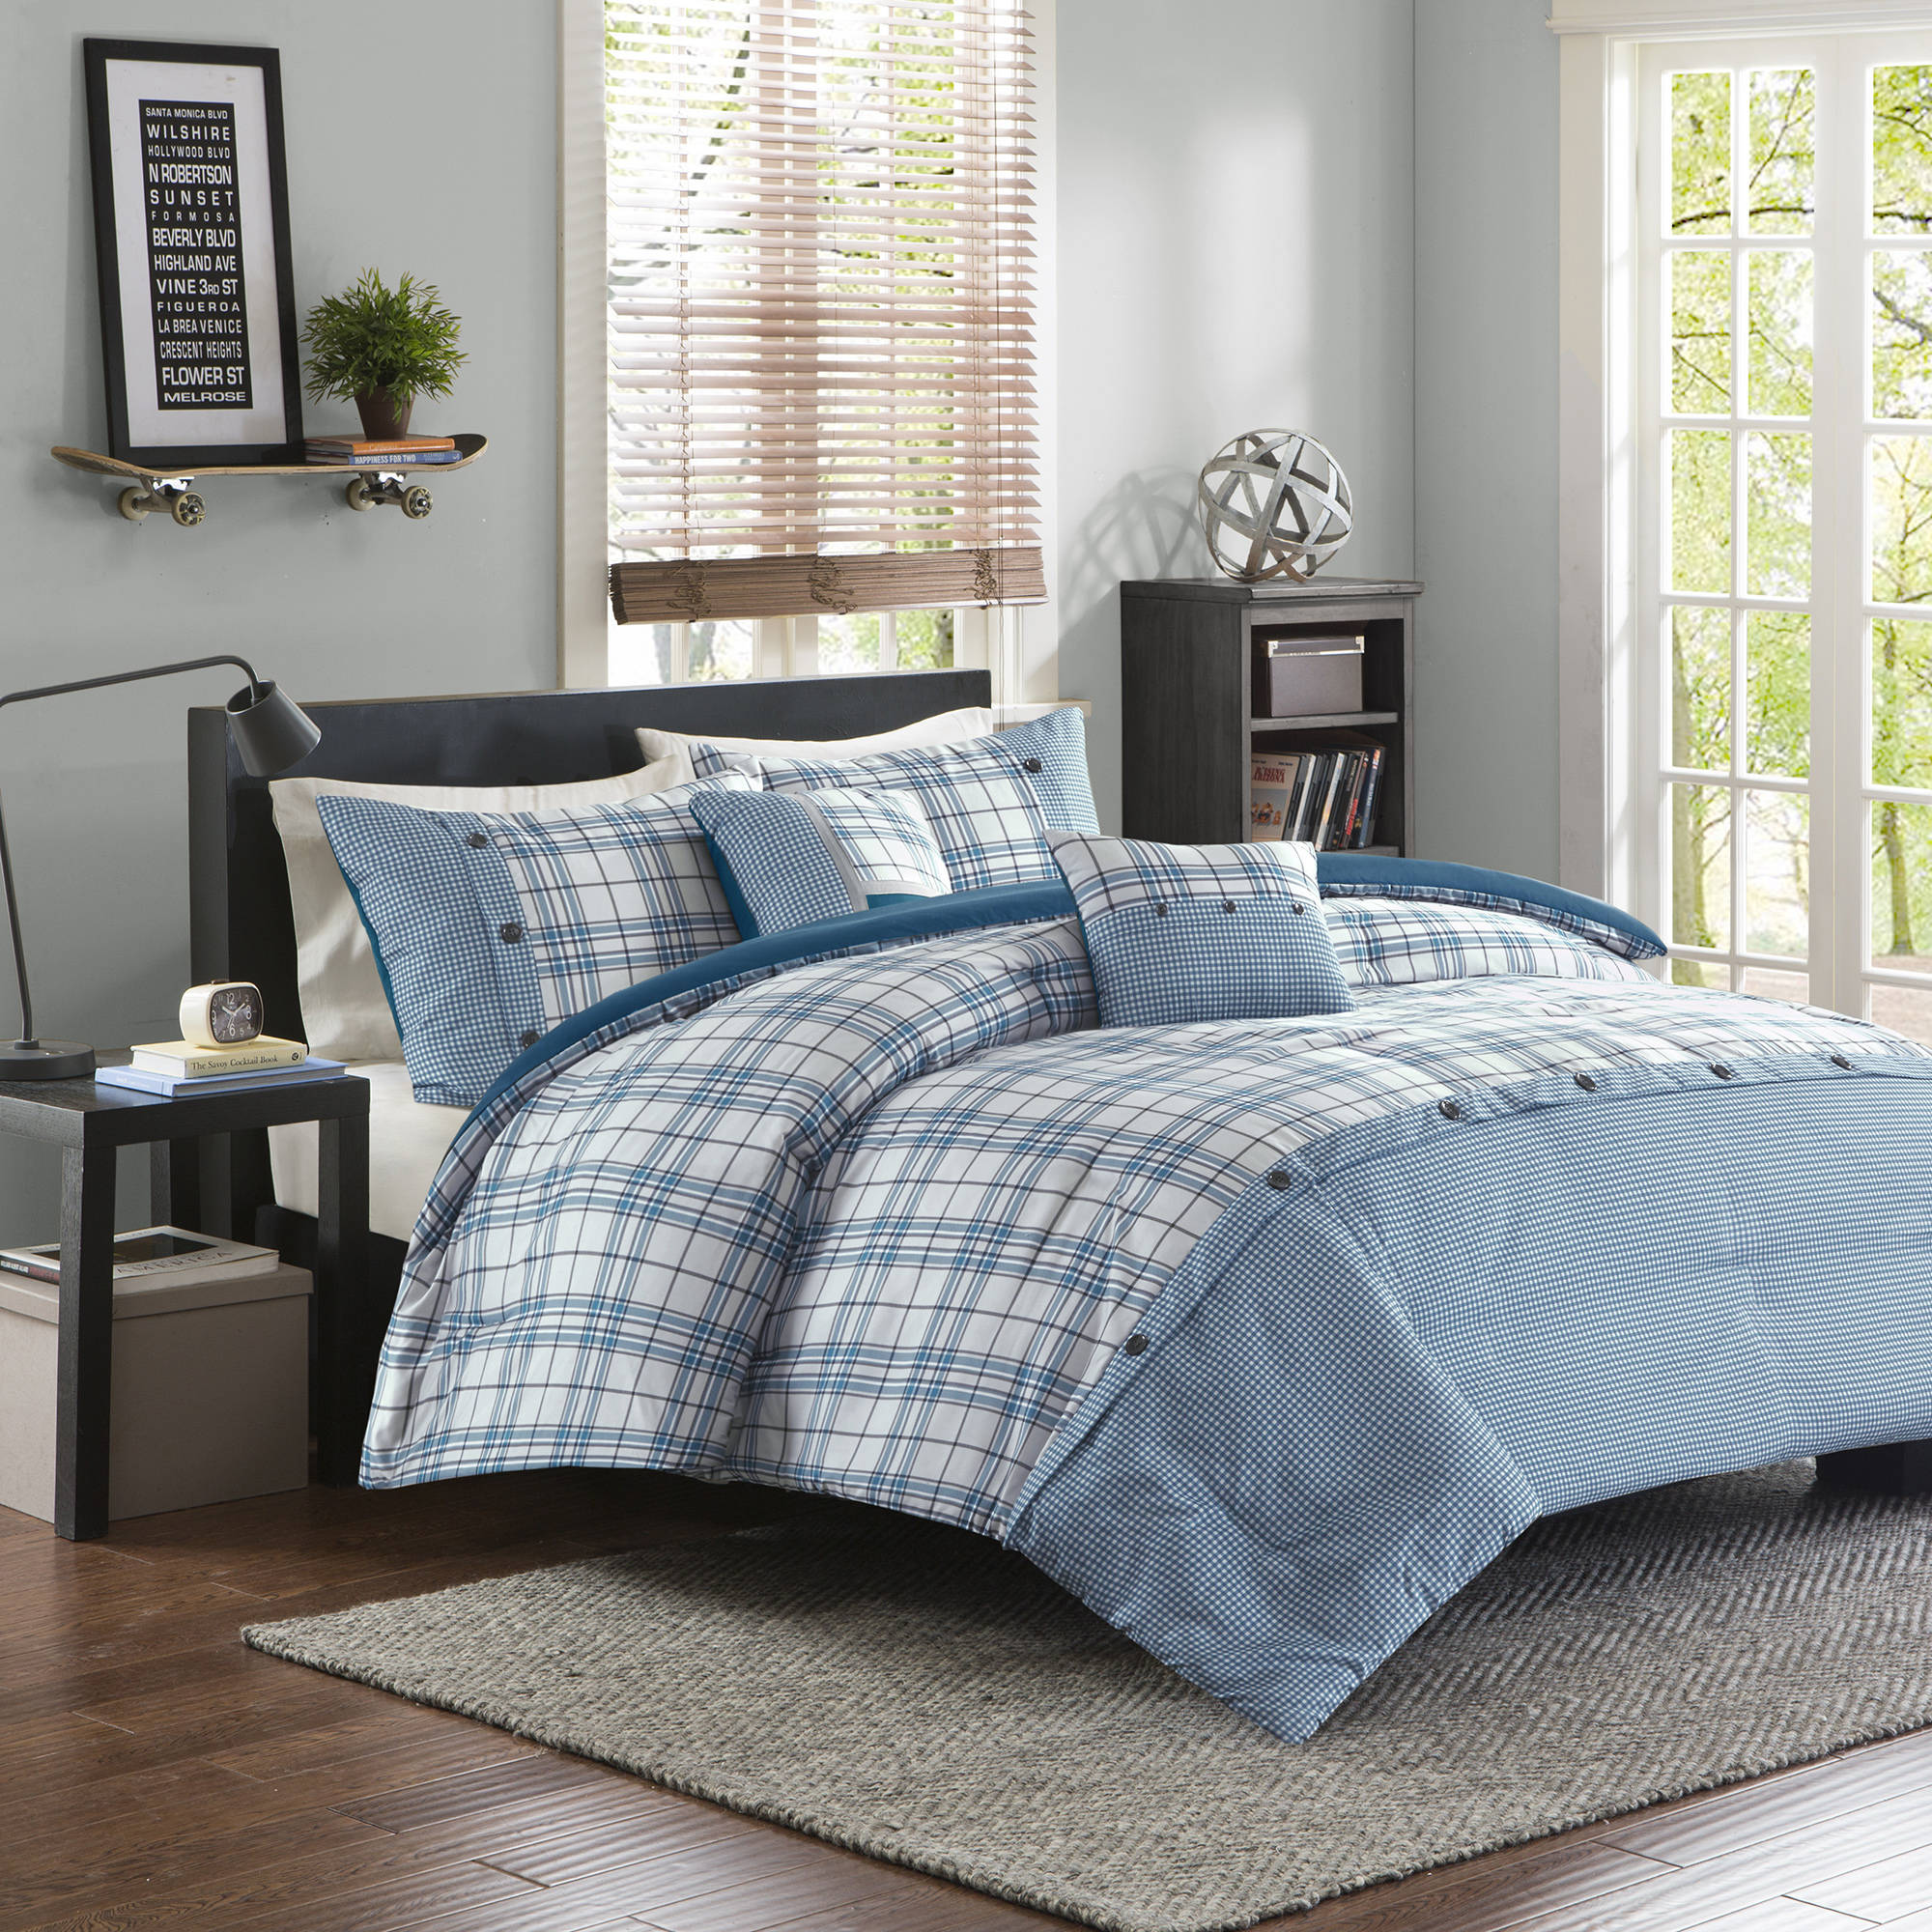 Home Essence Apartment Chet Bedding Comforter Set